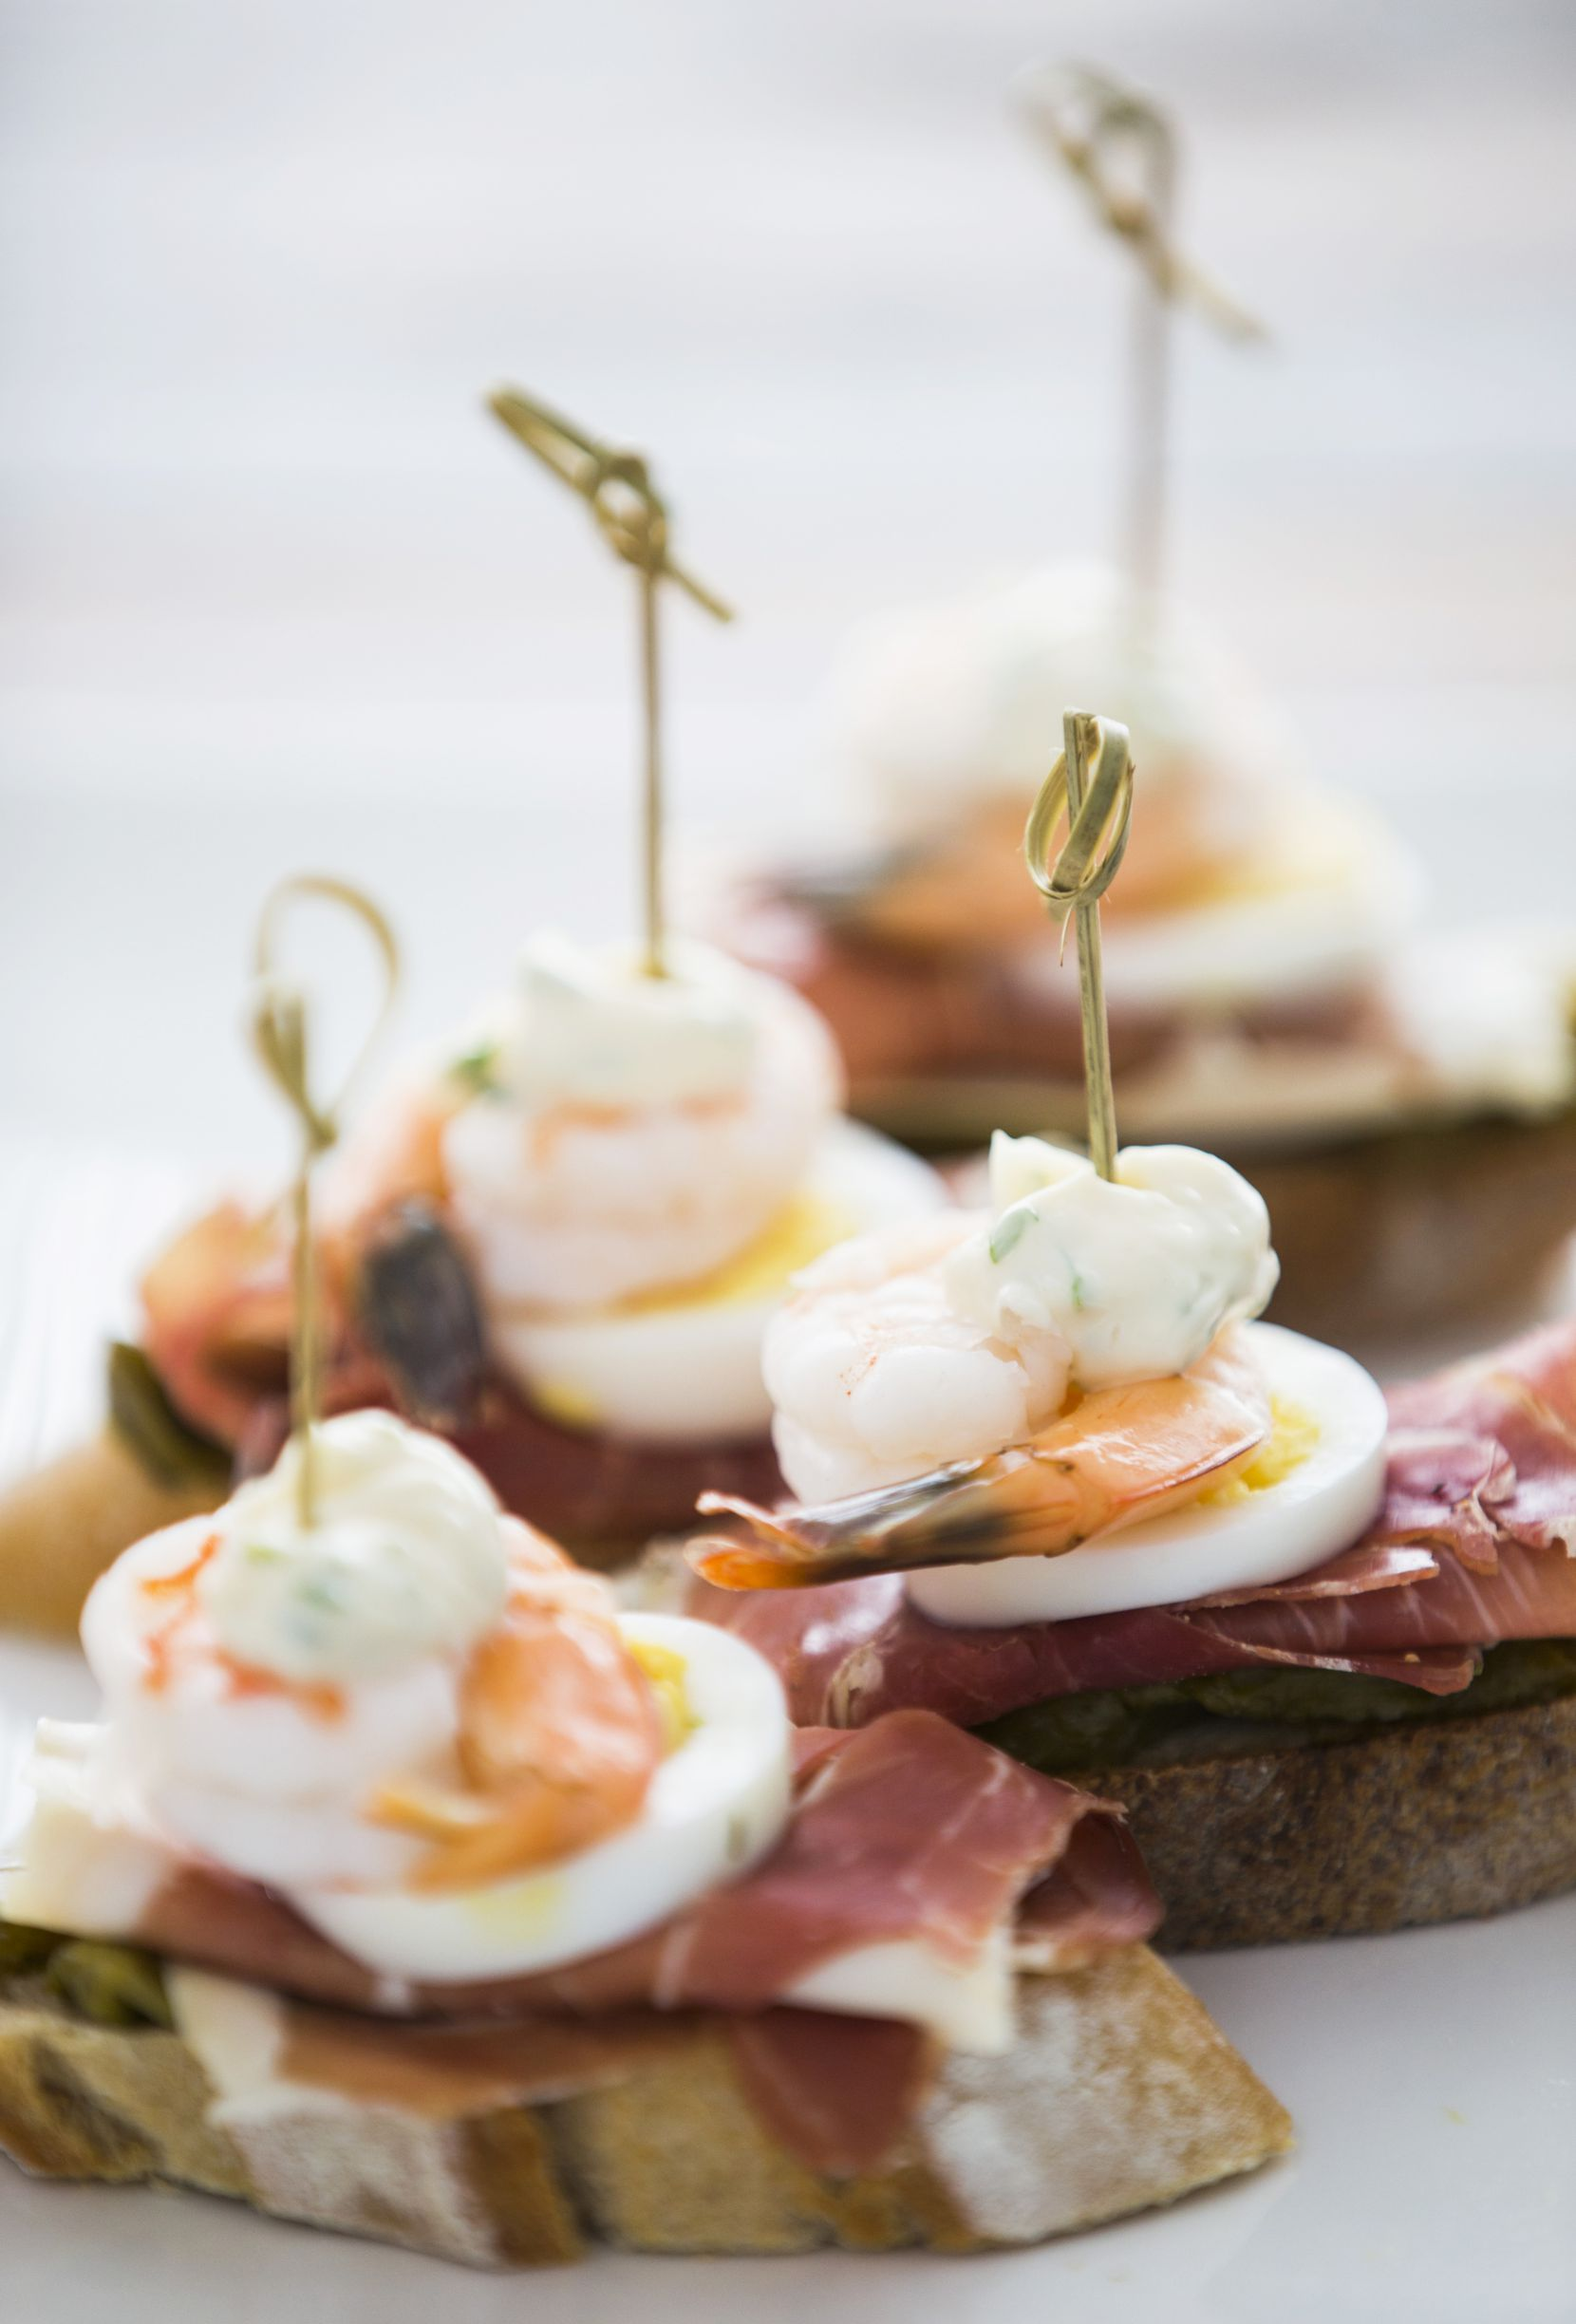 Jamon serrano with roasted peppers, egg and shrimp